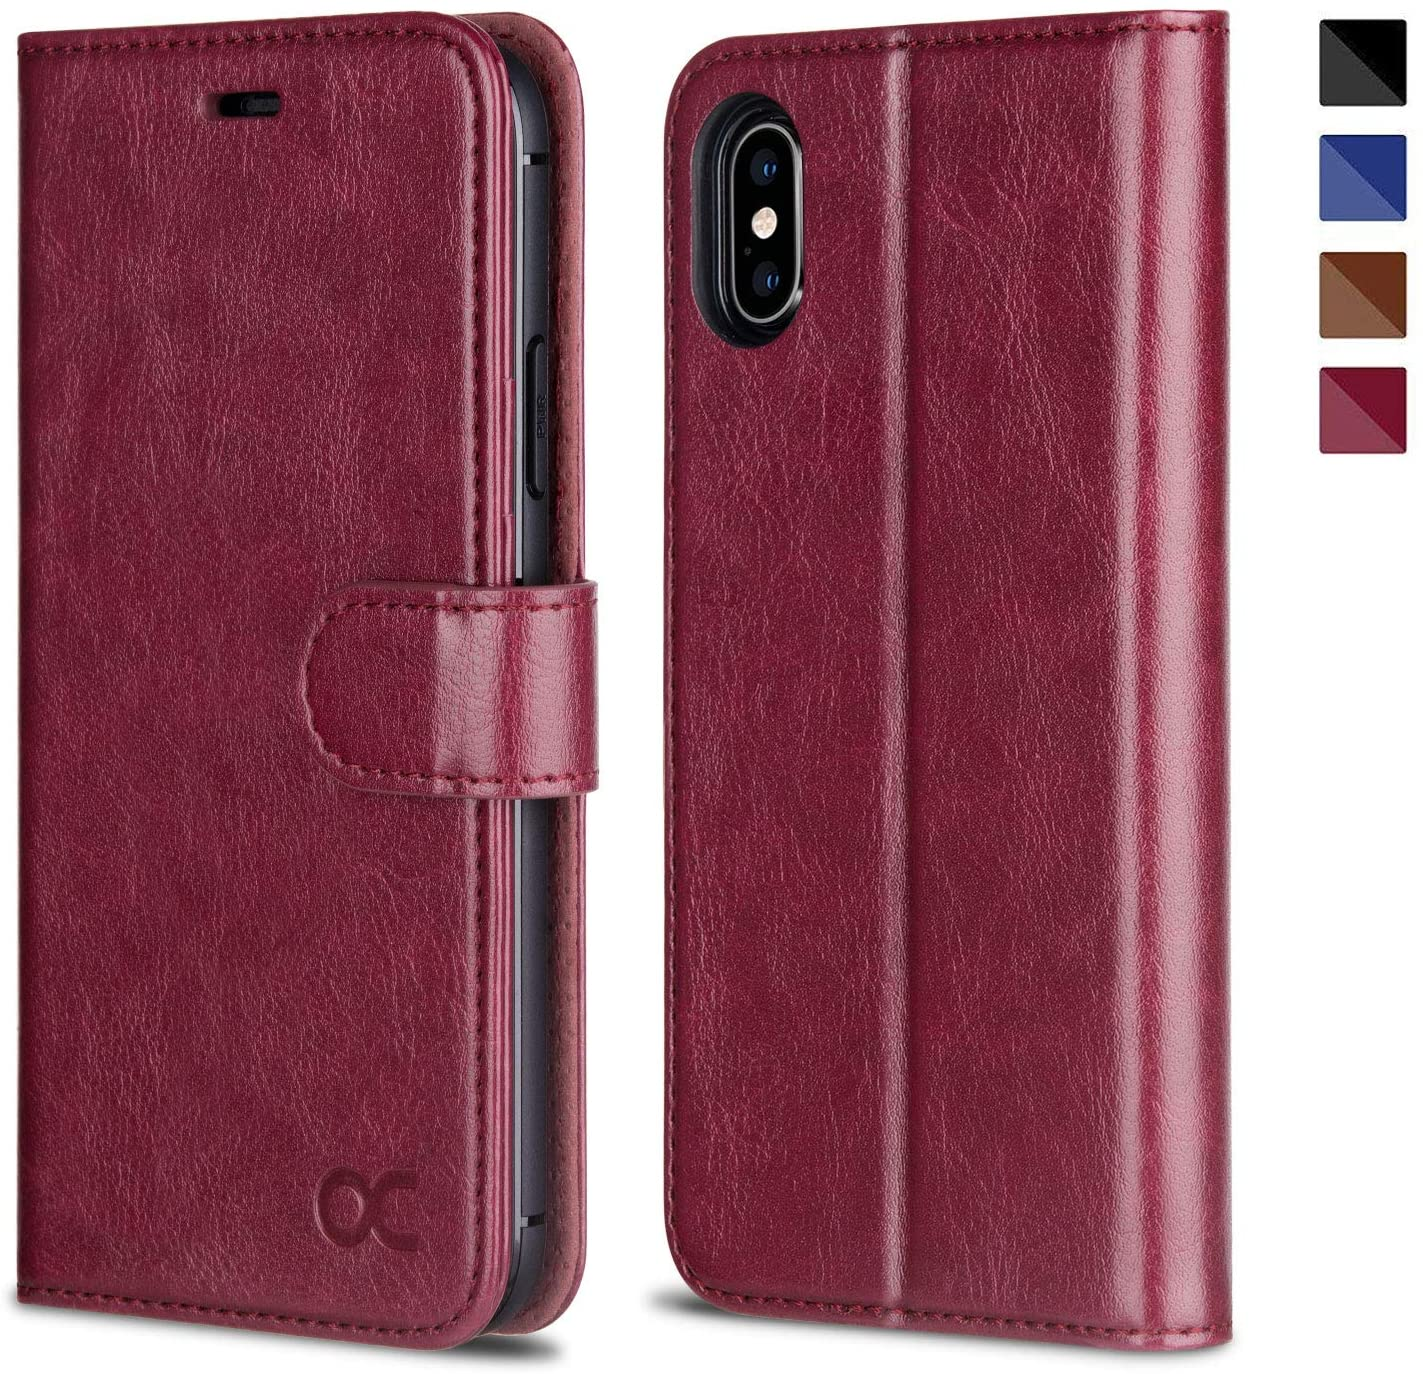 OCASE iPhone X Wallet Case, iPhone 10 Case [ Wireless Charging ] [ Card Slot ] [ Kickstand ] Leather Flip Wallet Phone Cover Compatible for iPhone X/iPhone 10 - Burgundy